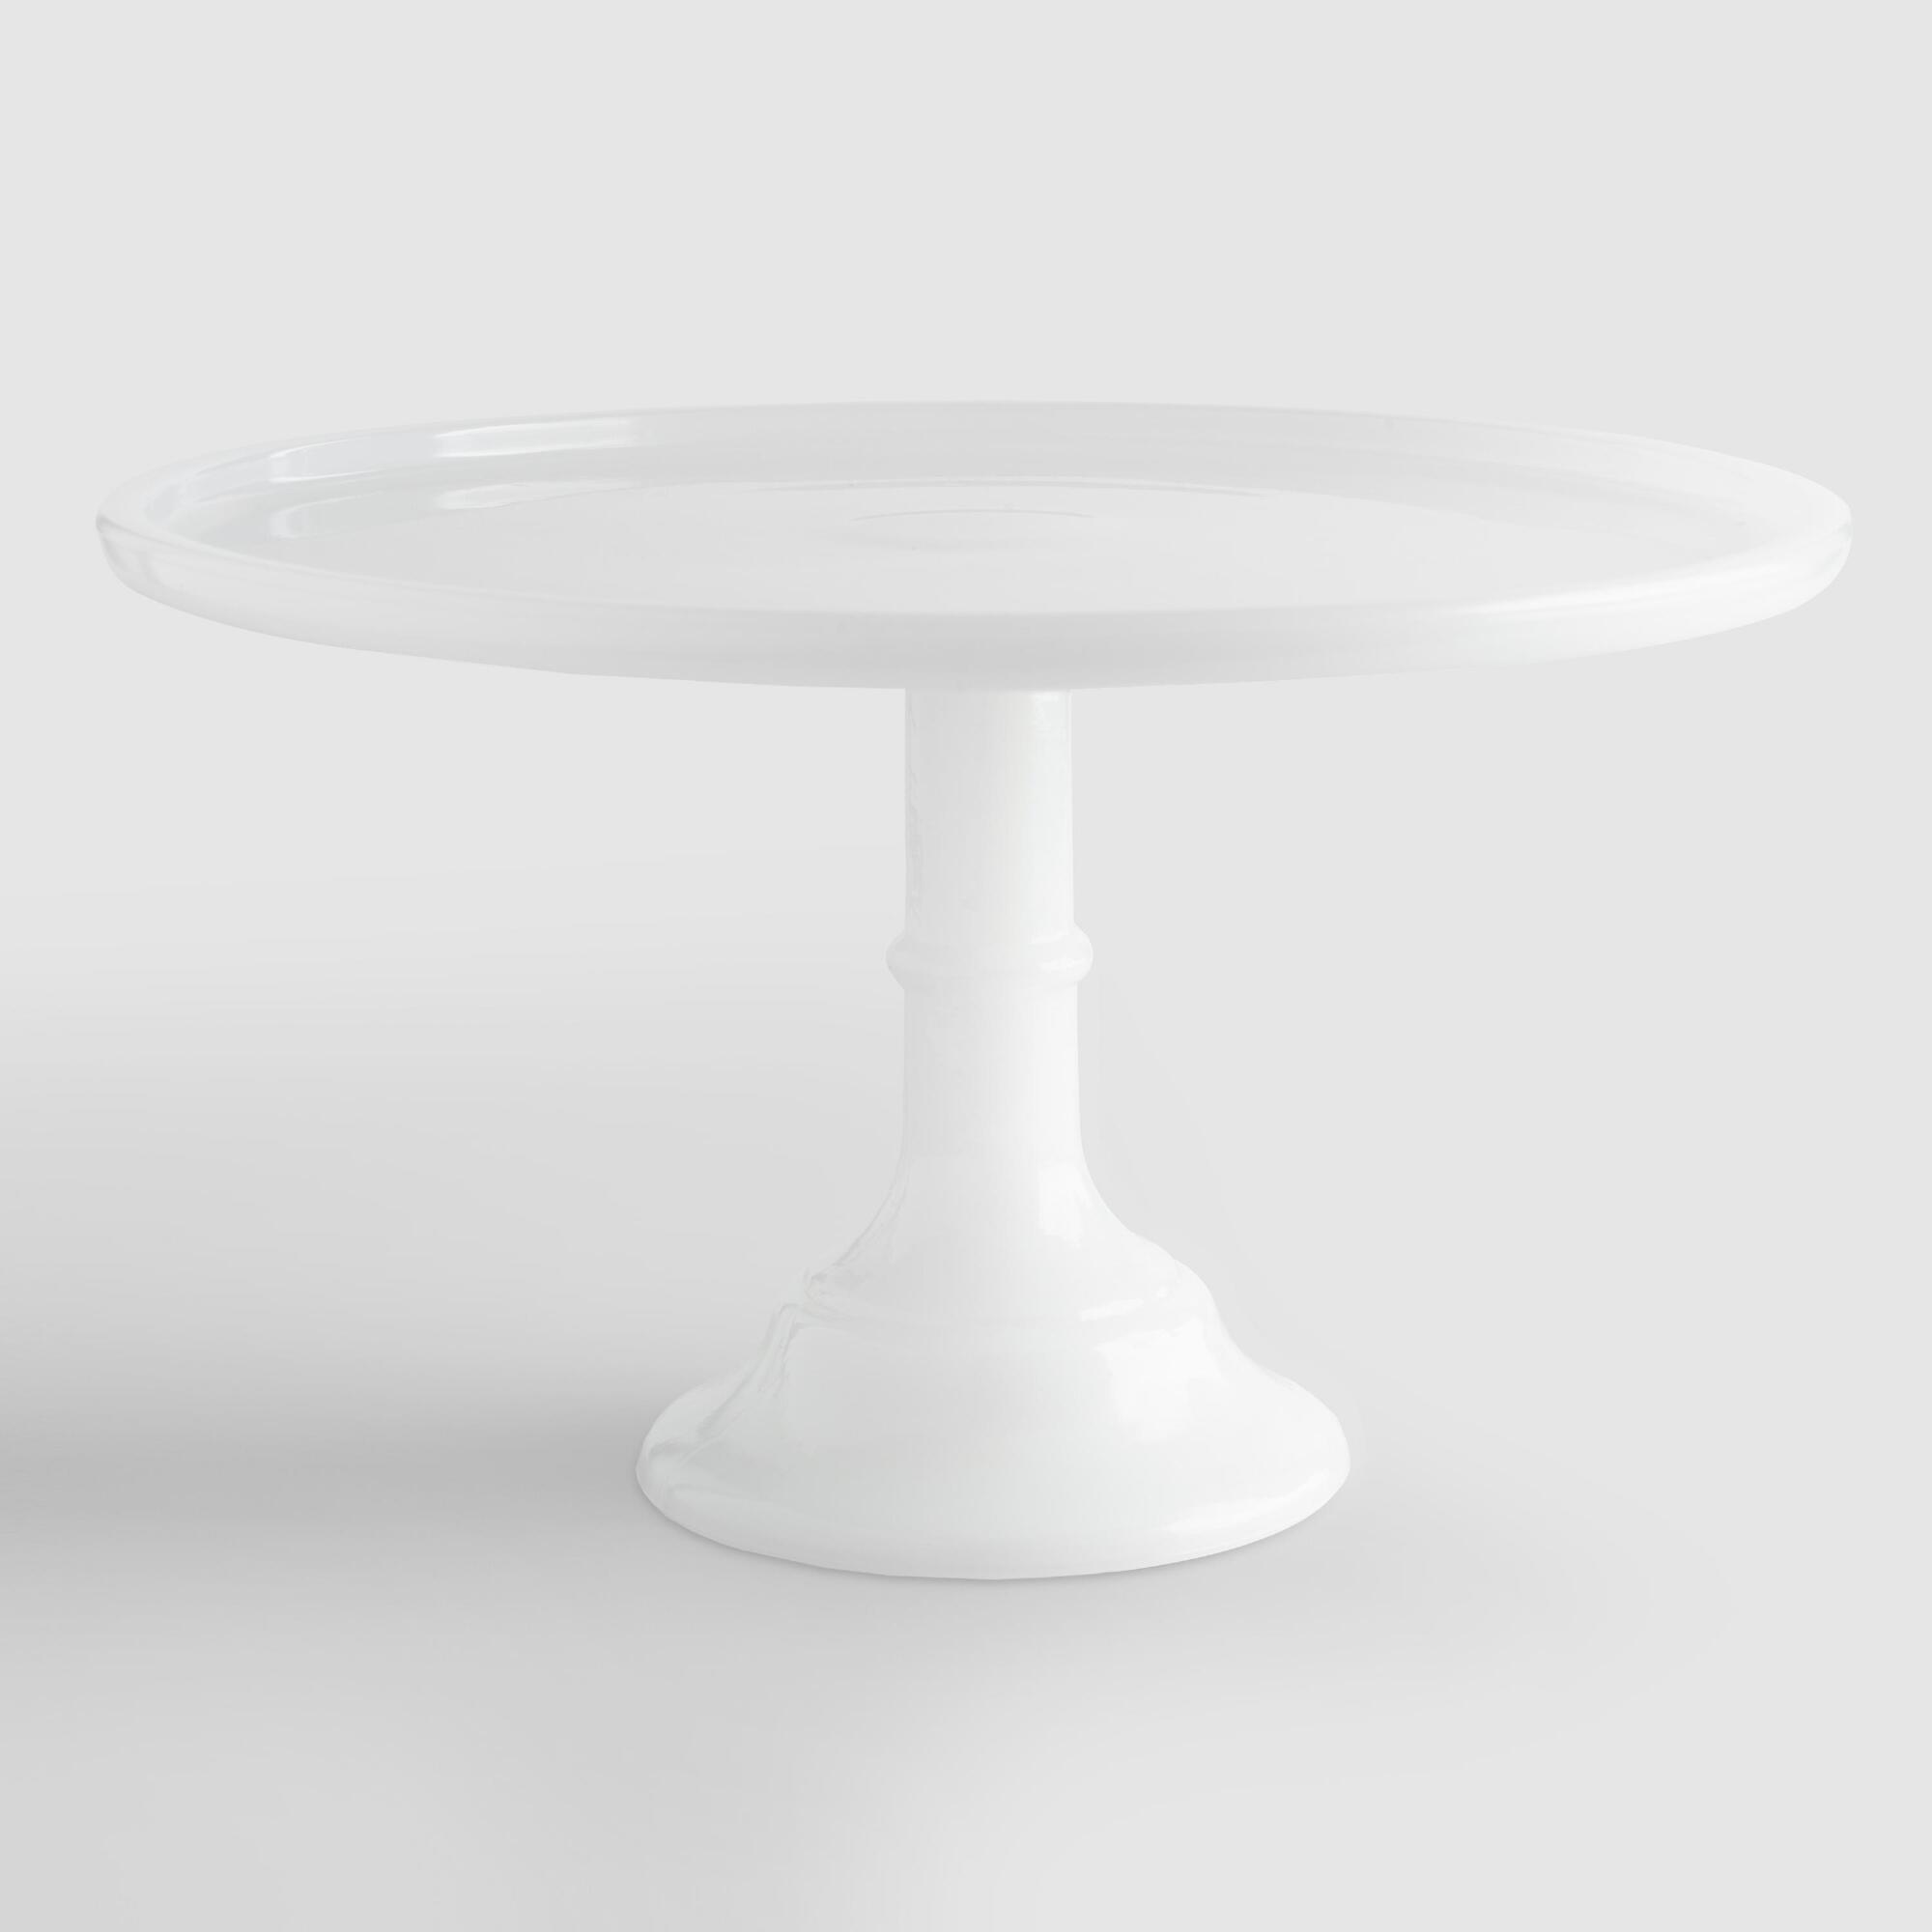 White Frosted Glass Pedestal Stand - 12.5In by World Market 12.5In